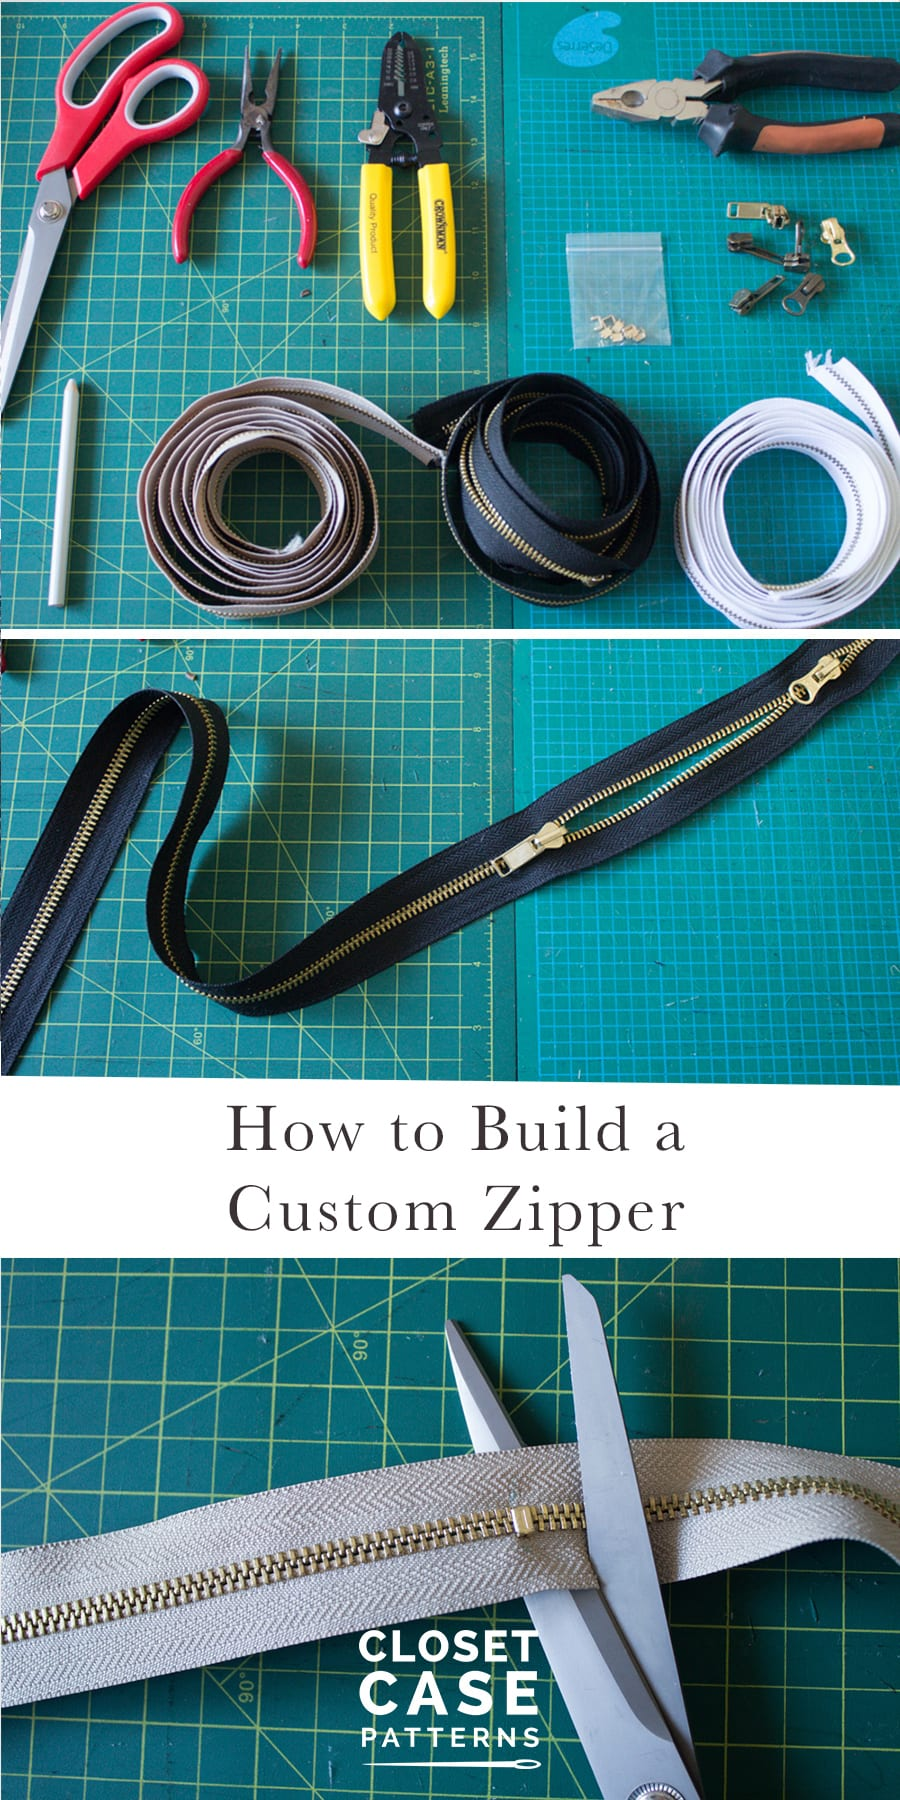 How to make a custom zipper! Tutorial for shortening zippers and making custom zippers from parts // Closet Case Patterns